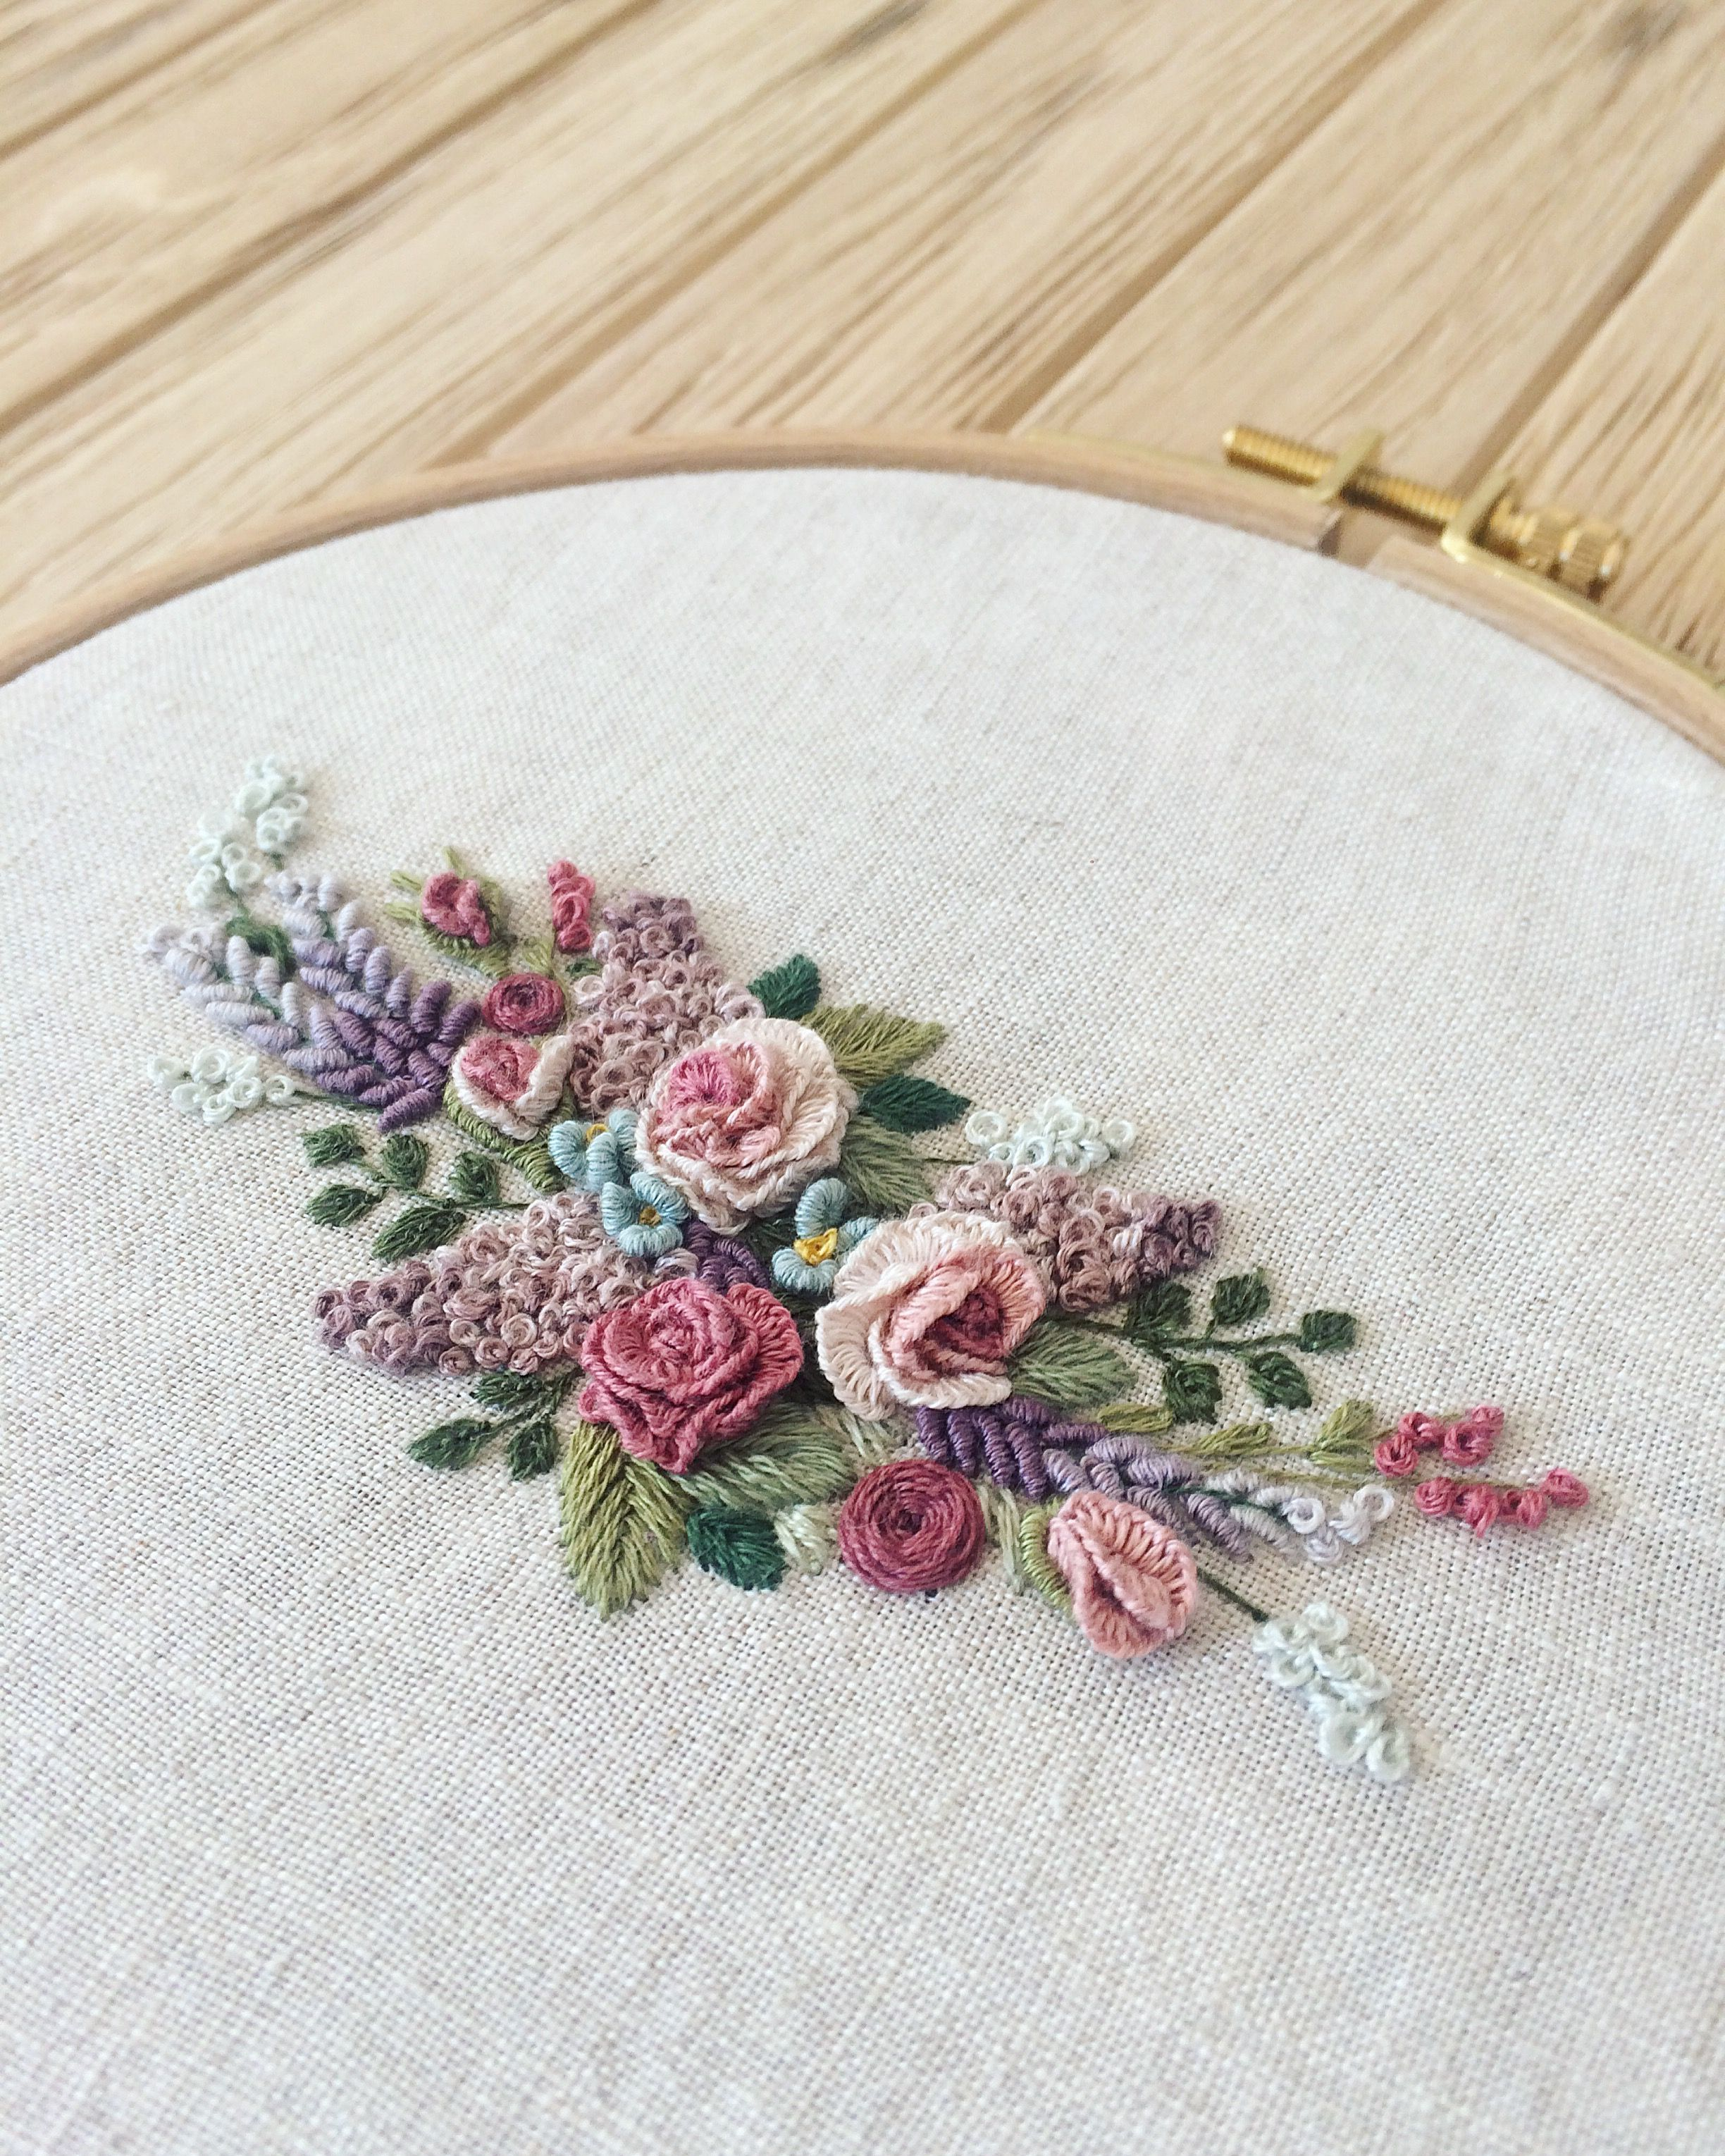 My embroidery brazilian embroidery pinterest embroidery hand